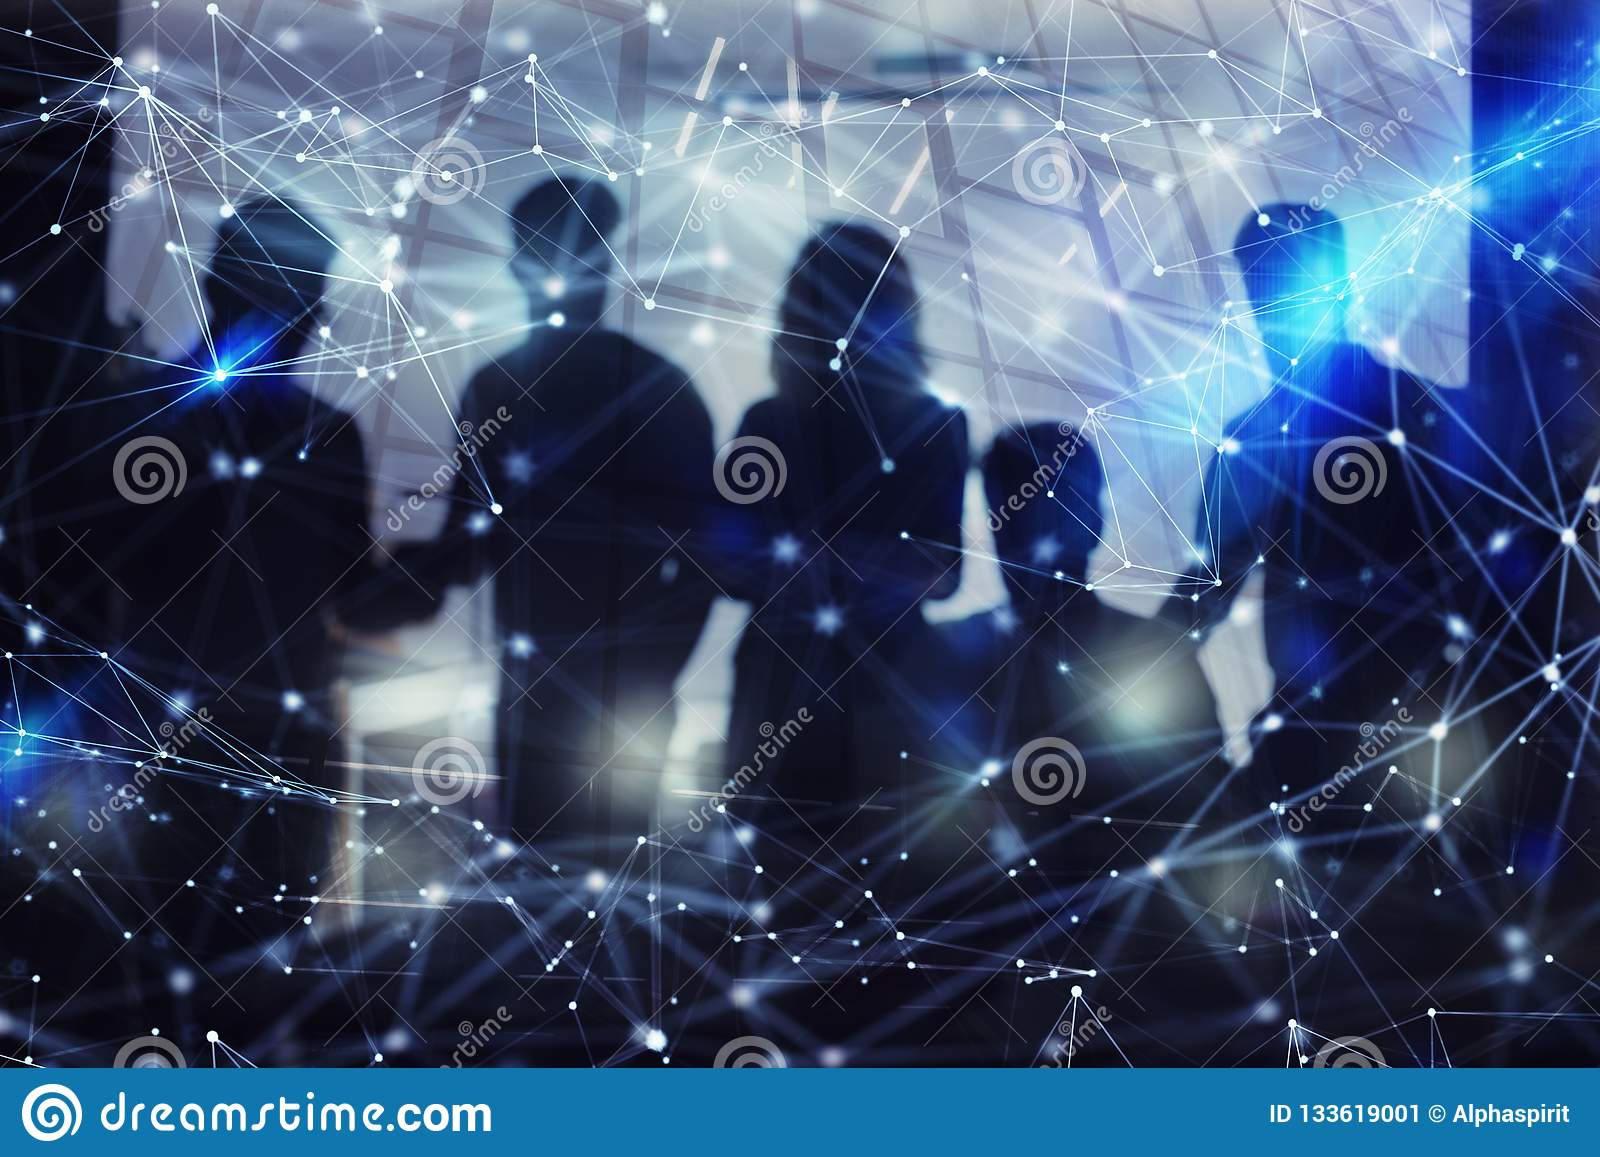 Silhouette of business people work together in office. Concept of teamwork and partnership. double exposure with network